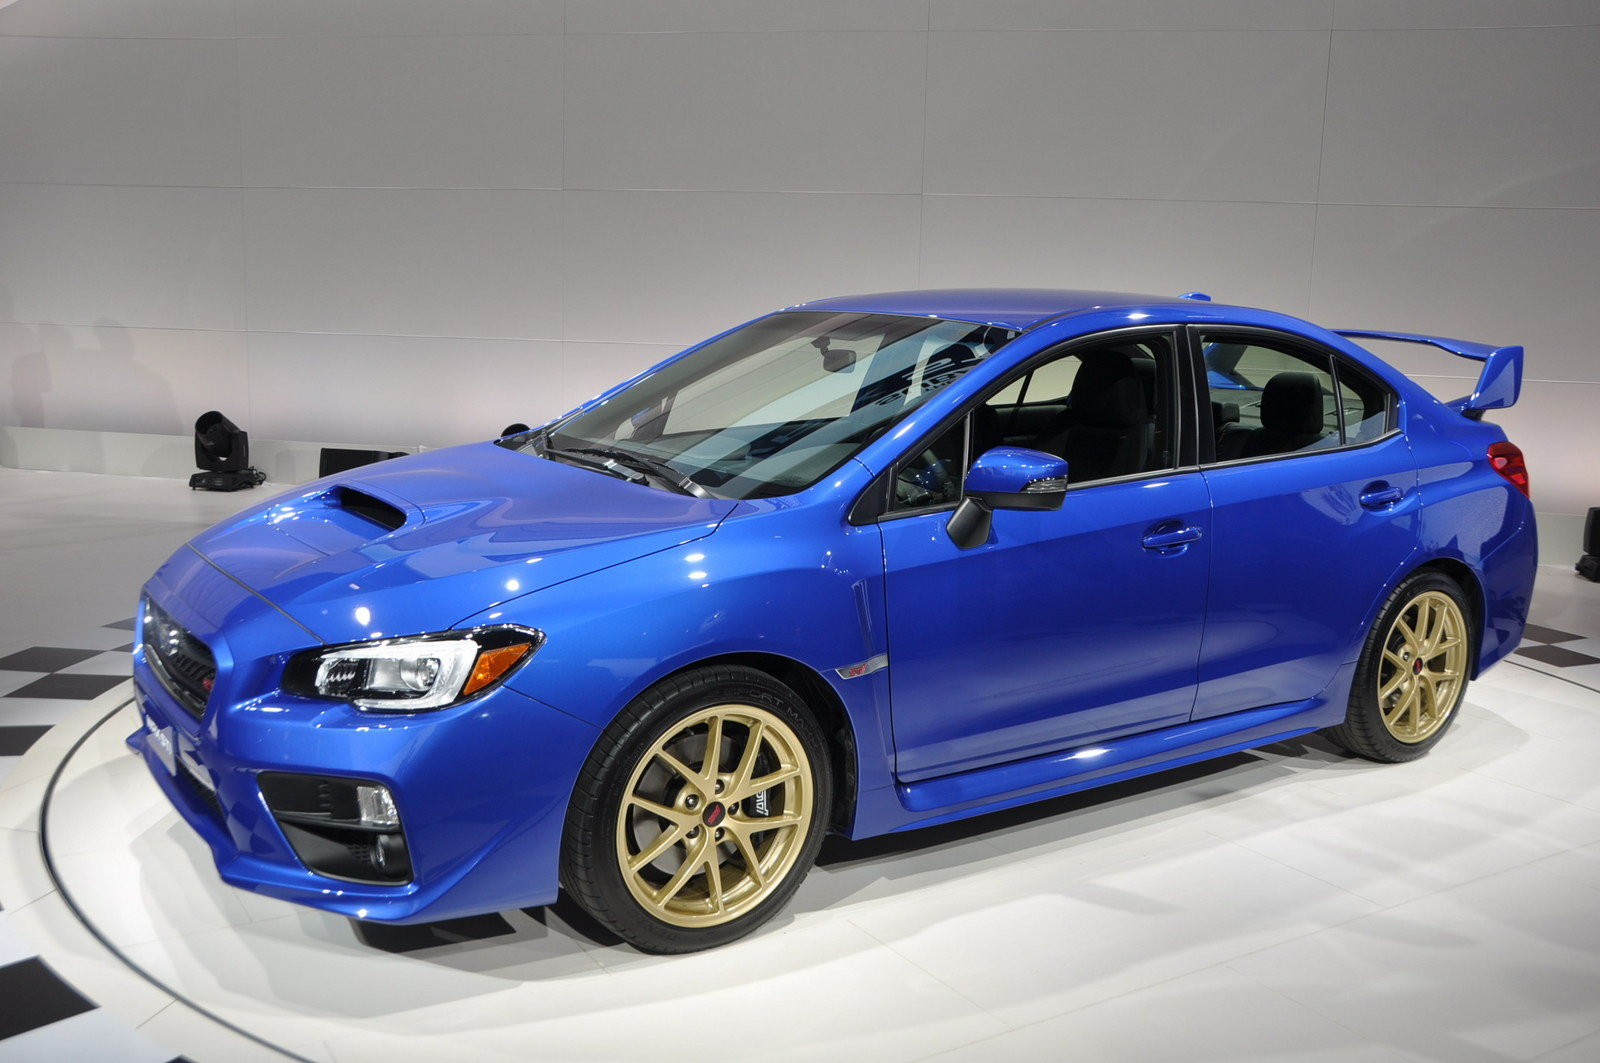 2015 subaru wrx sti picture 538737 car review top speed. Black Bedroom Furniture Sets. Home Design Ideas